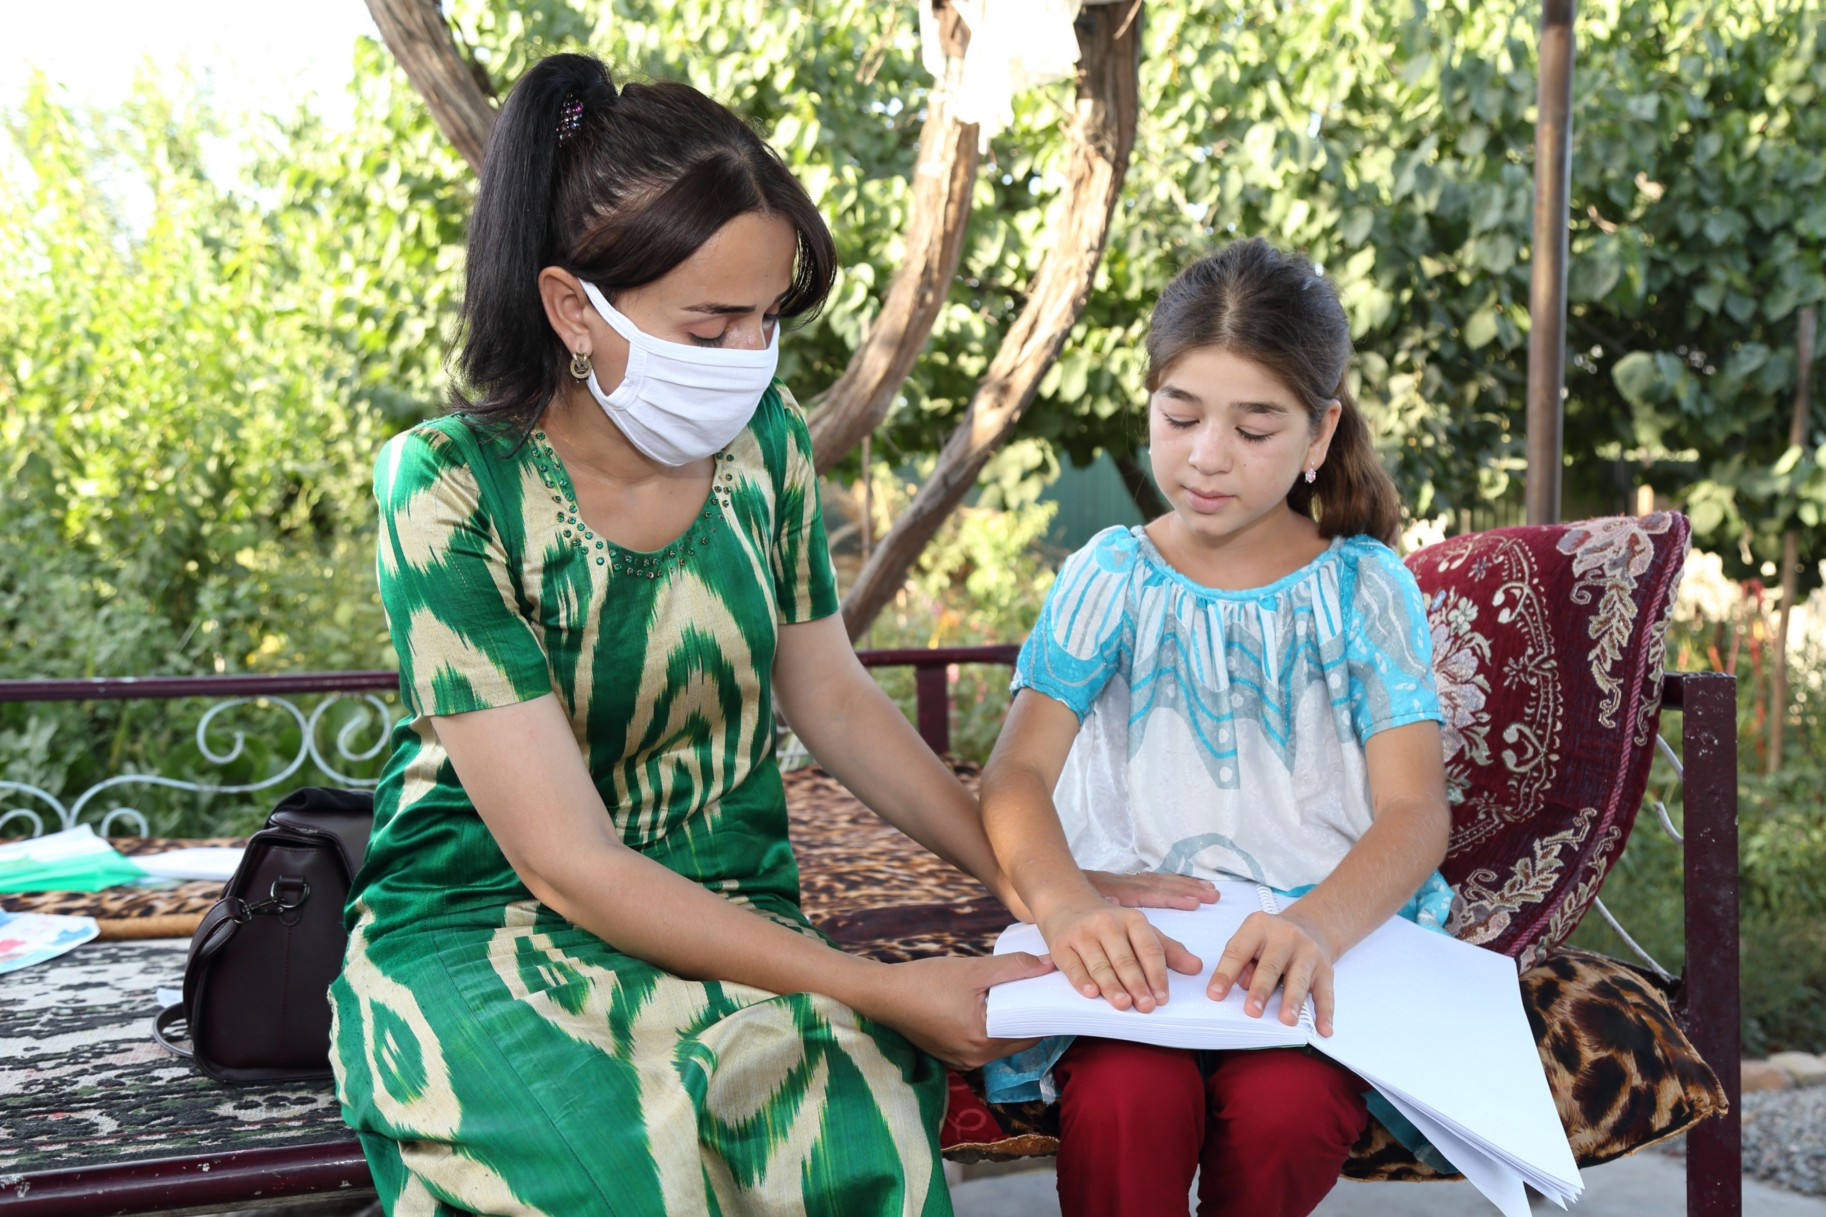 Roziya Boboeva, a teacher in Tajikistan, visits the homes of four of her students who have low vision — including Manija Sharipova — with USAID-donated Braille books and books with large print. / Photograph by Rustam Mailov for USAID